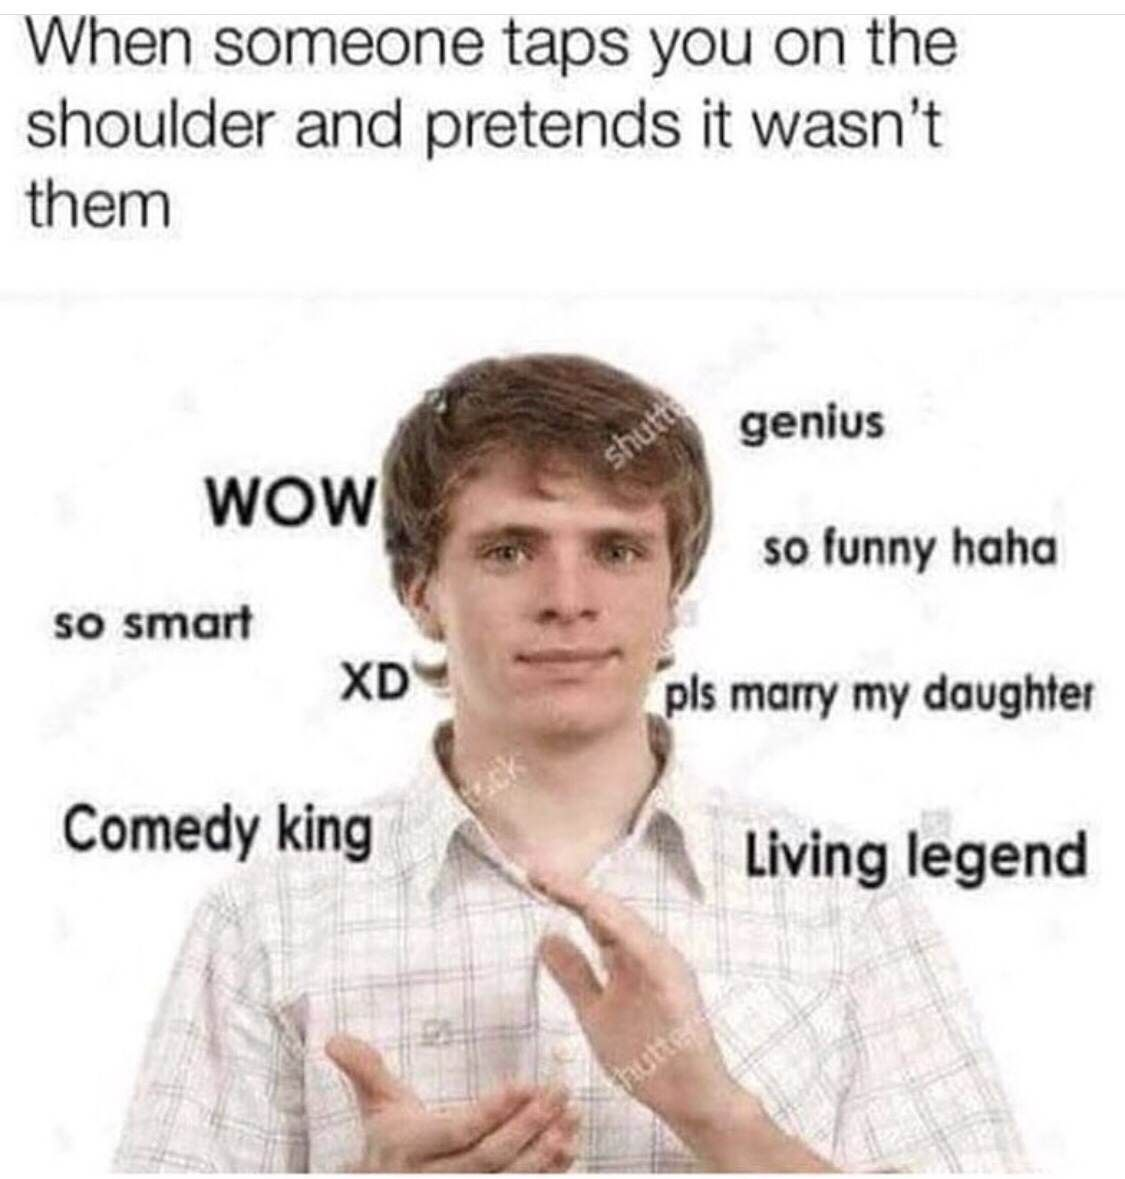 16 Craziest Memes That Will Make You Go Rofl Ladnow Funny Relatable Memes Really Funny Memes Funny Memes